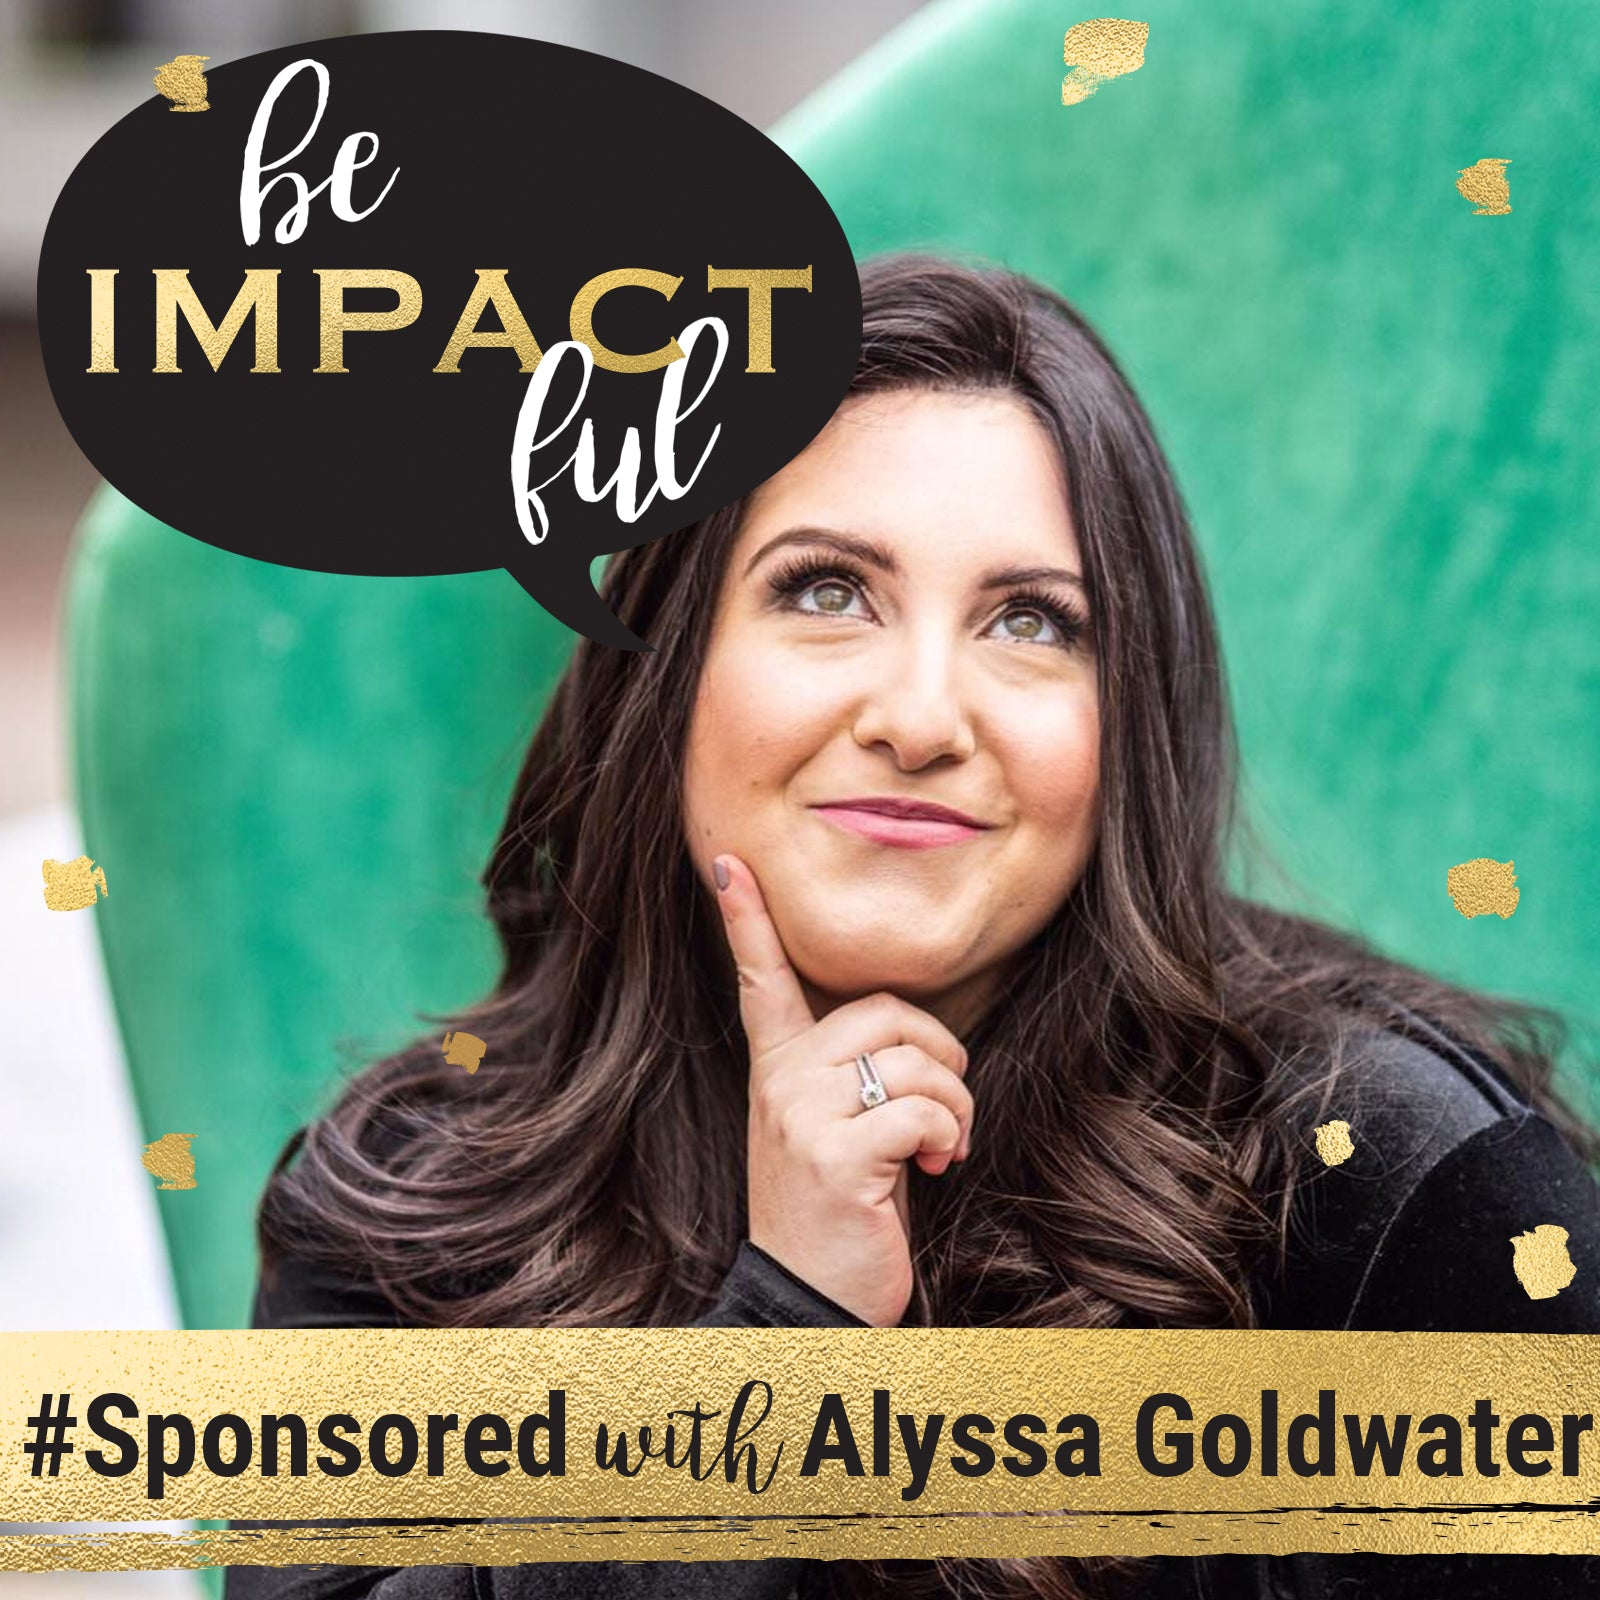 # Sponsored with Alyssa Goldwater